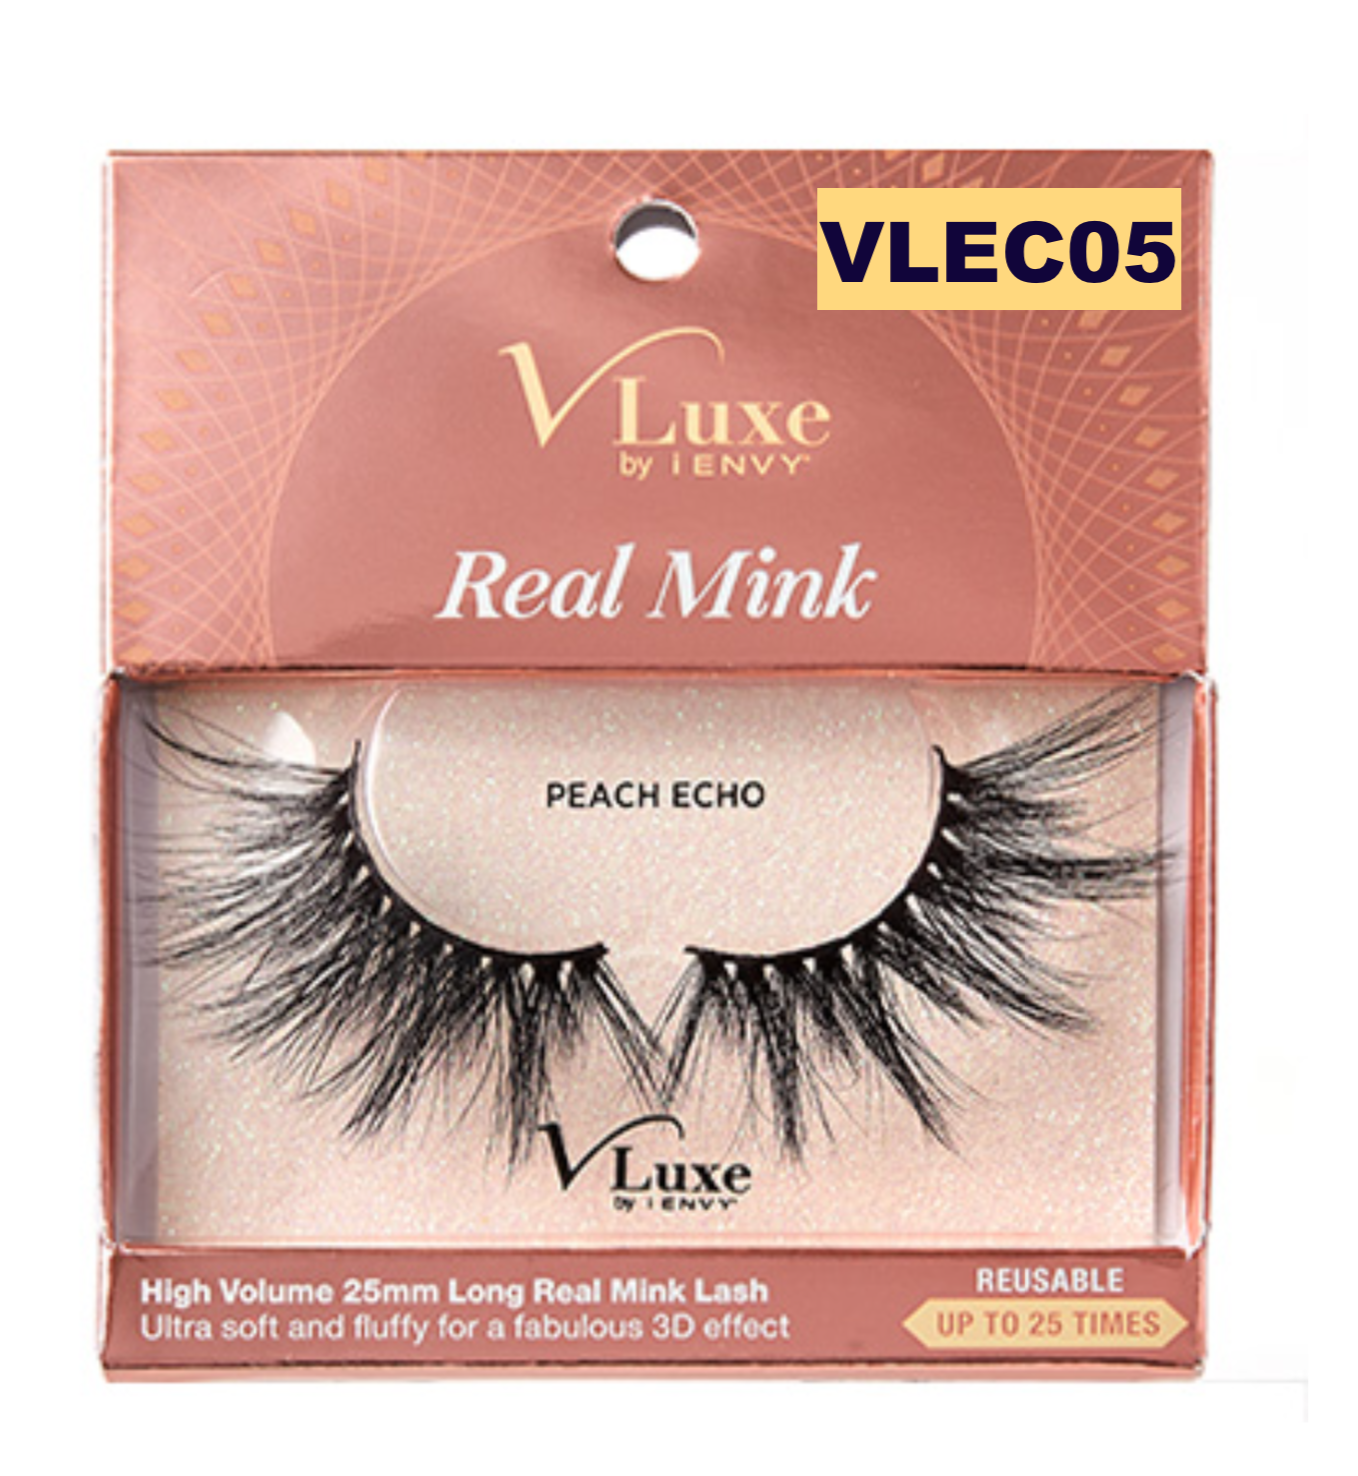 Primary image for I ENVY BY KISS EYELASHES V-LUXE REAL MINK PEACH ECHO  VLEC05